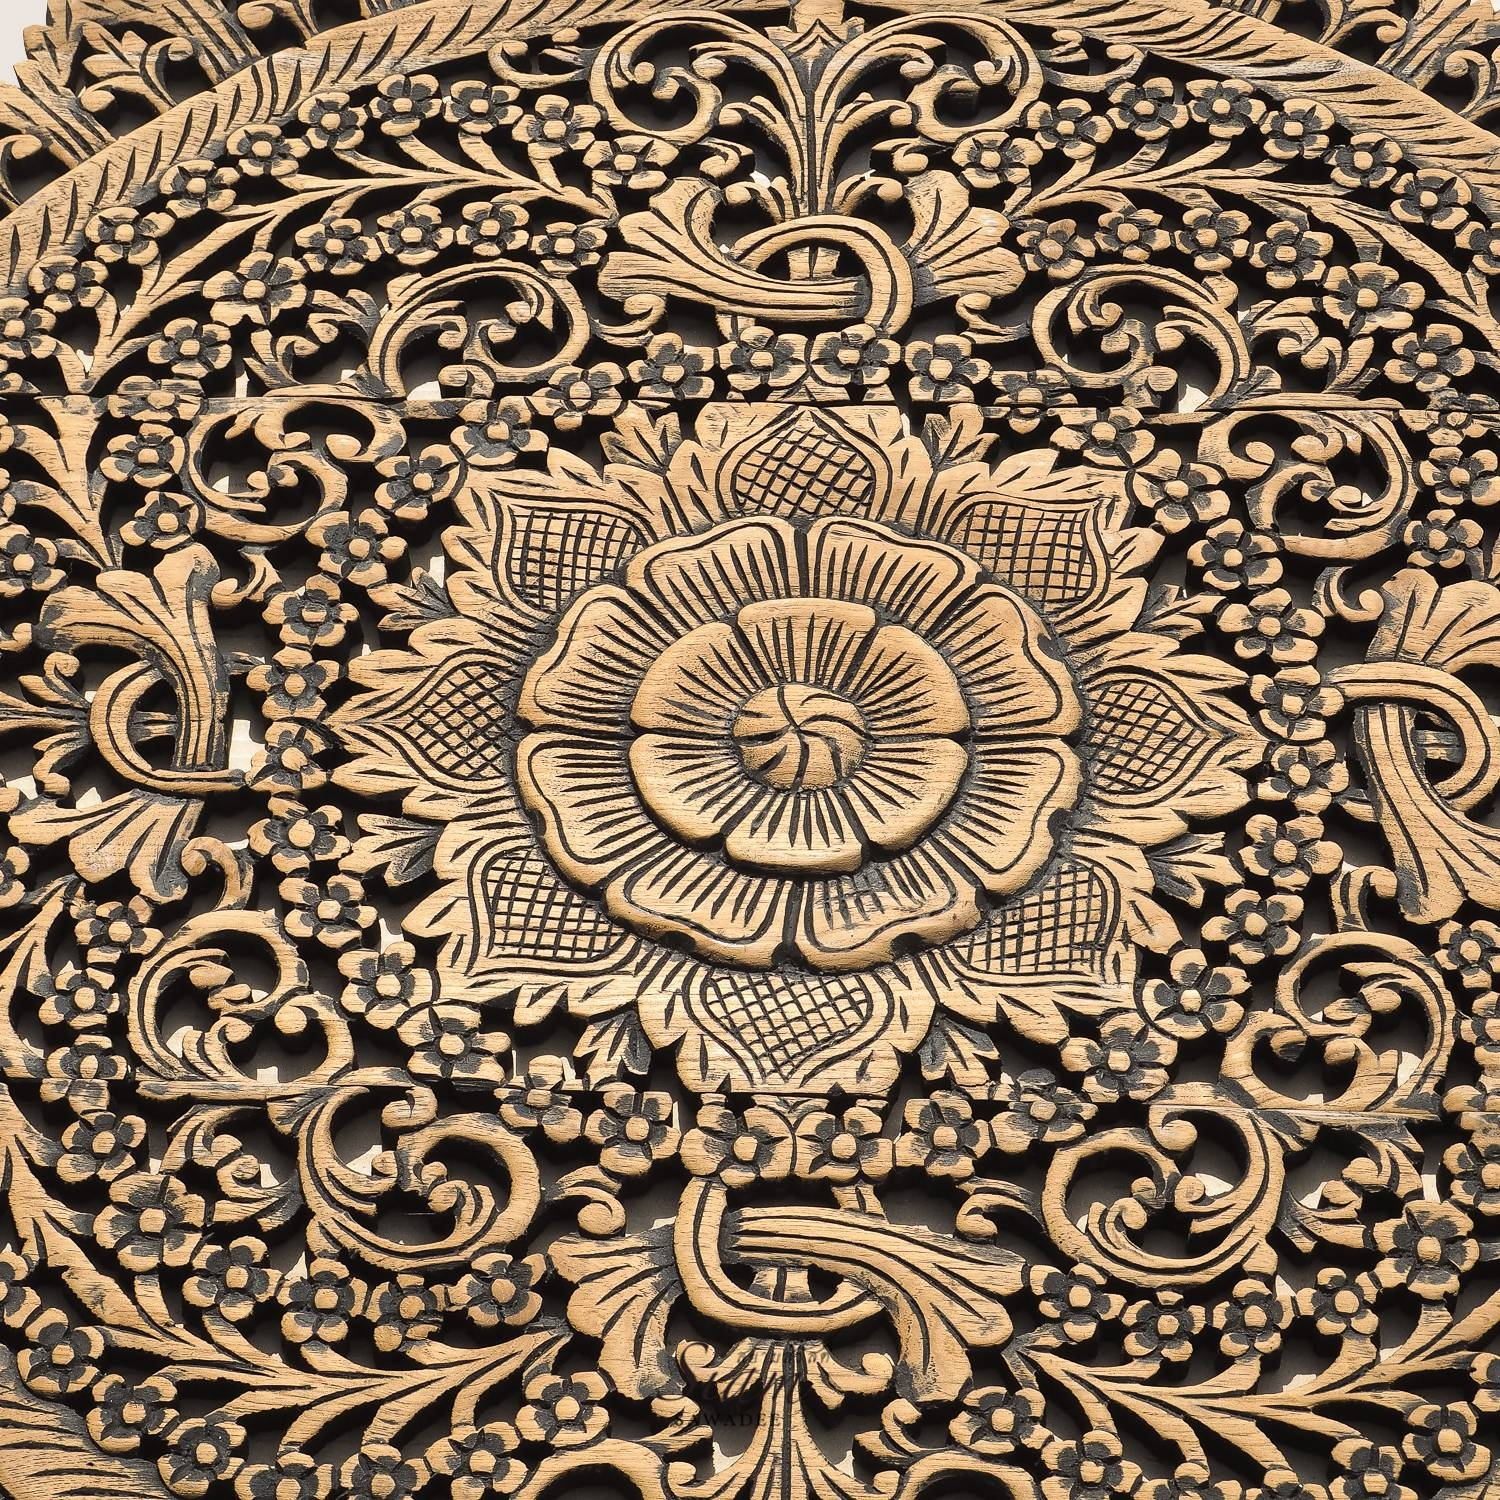 Rustic Carved Wall Art Panel Asian Home Decor – Siam Sawadee Inside Most Recent Wooden Wall Art Panels (View 8 of 20)